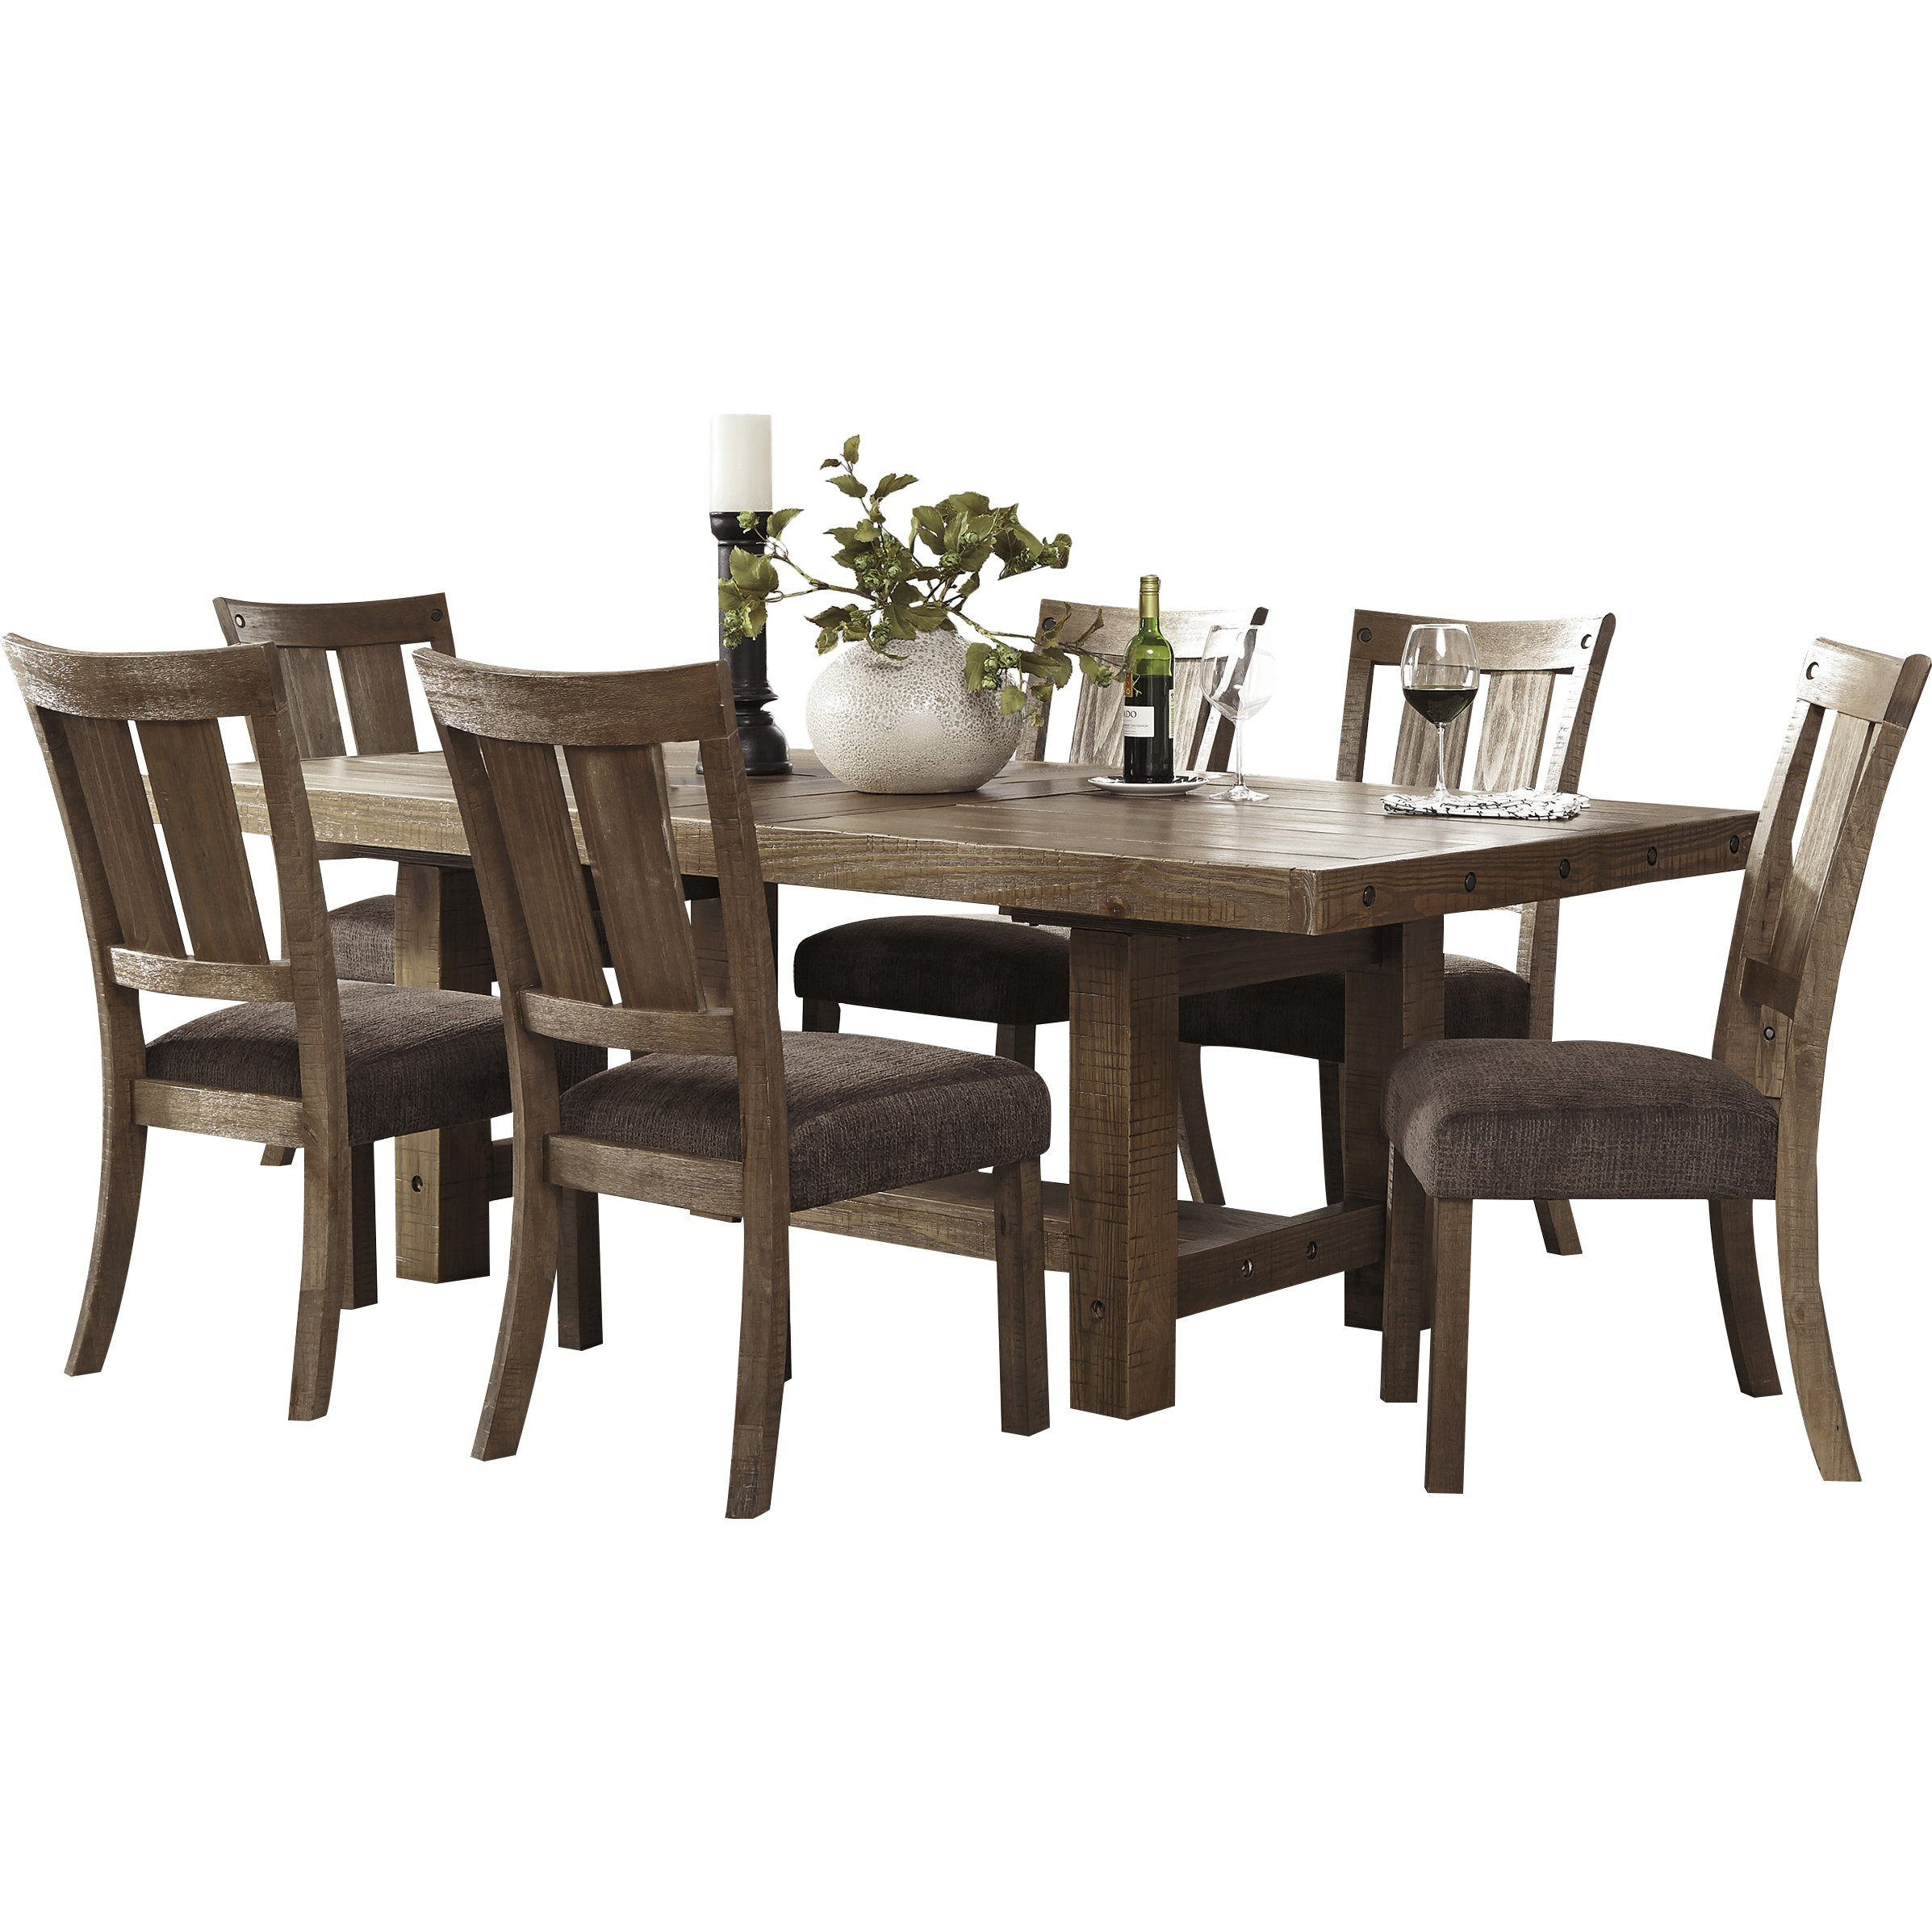 Best ideas about Dining Table Height . Save or Pin Signature Design by Ashley Counter Height Extendable Now.